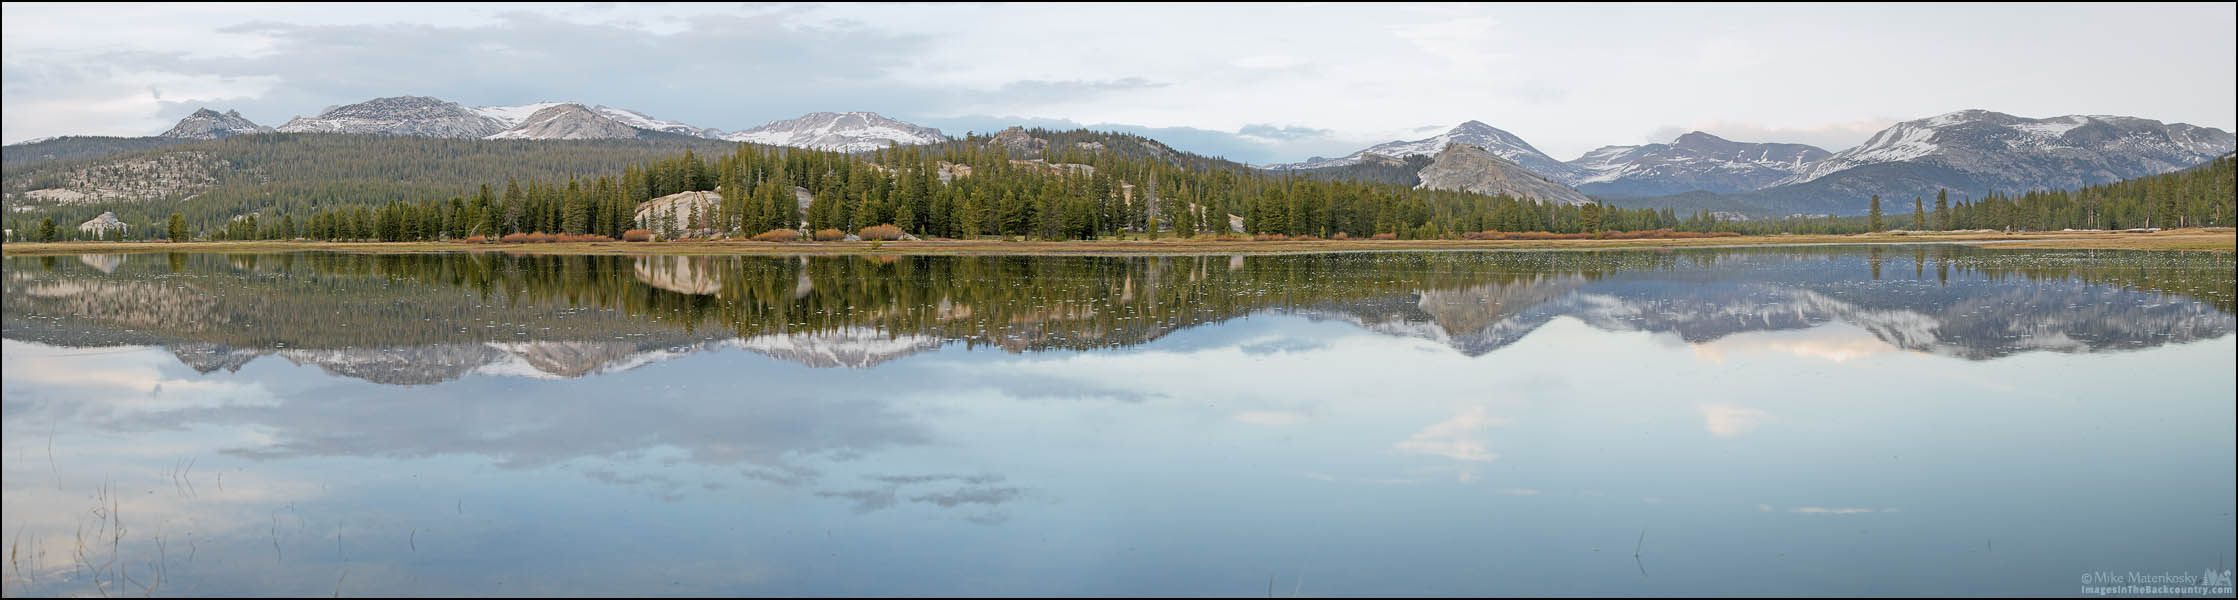 A Tuolumne Meadows Panoramic